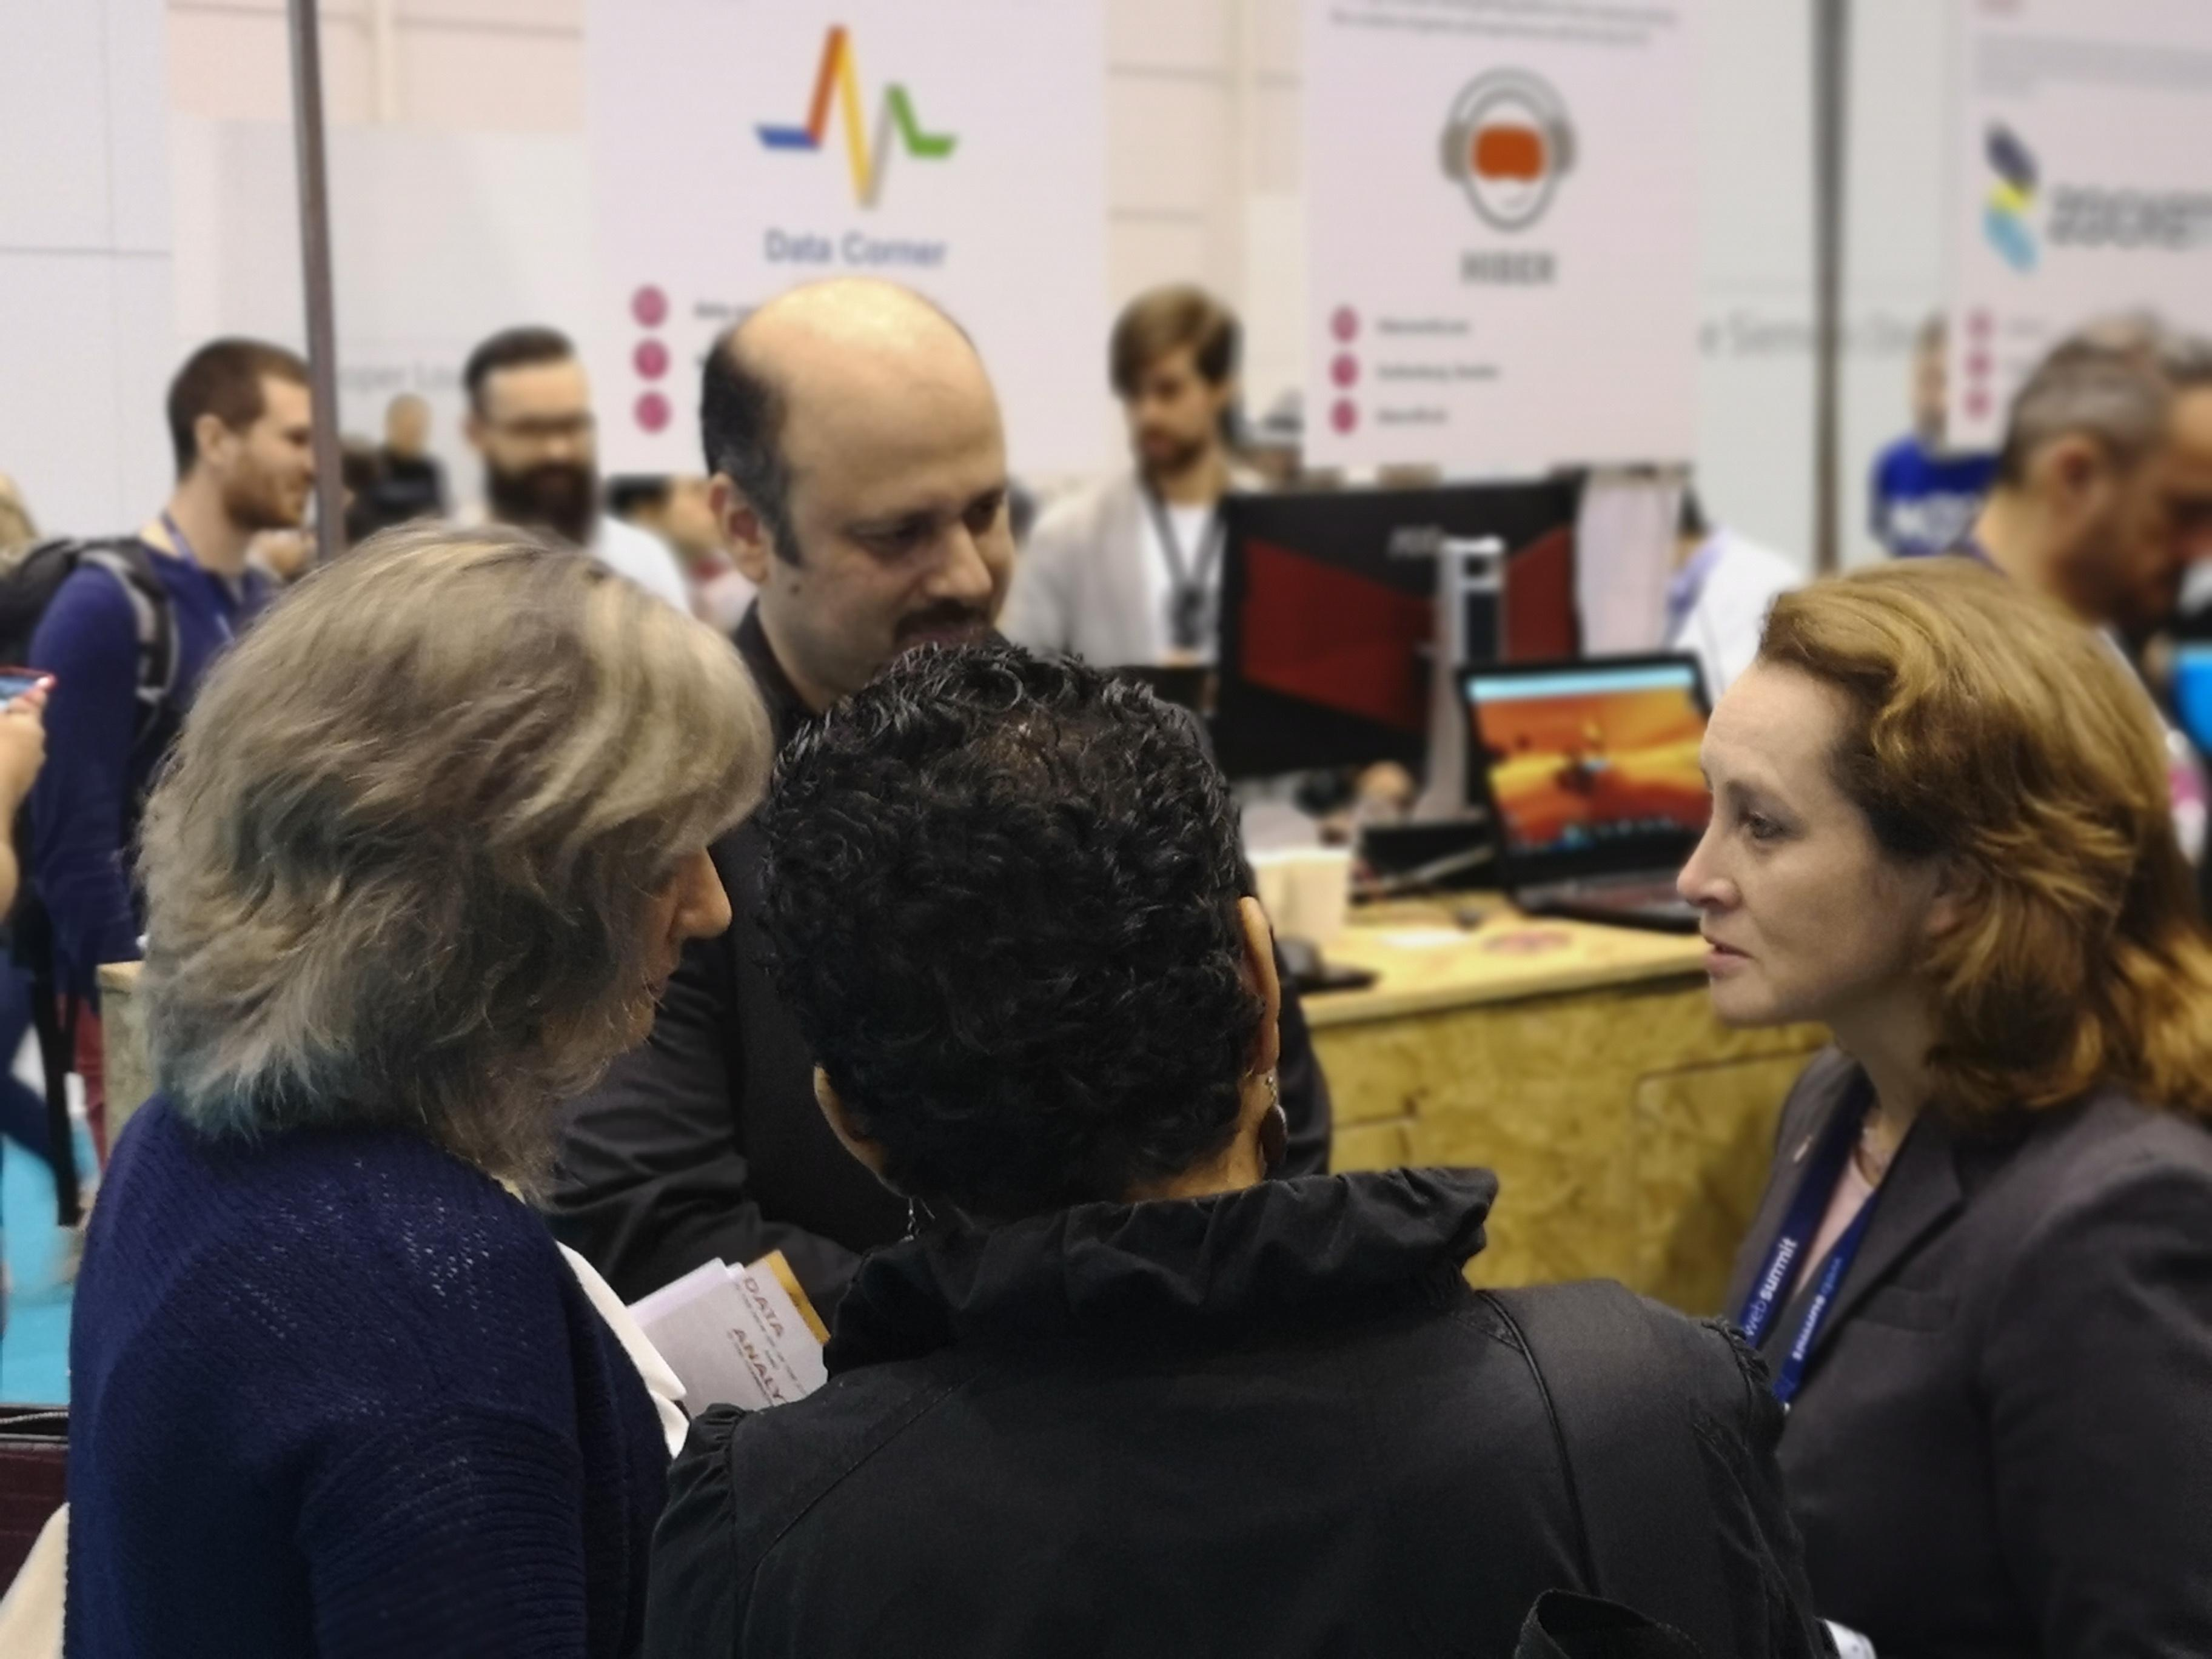 Data Corner in WebSummit 2018